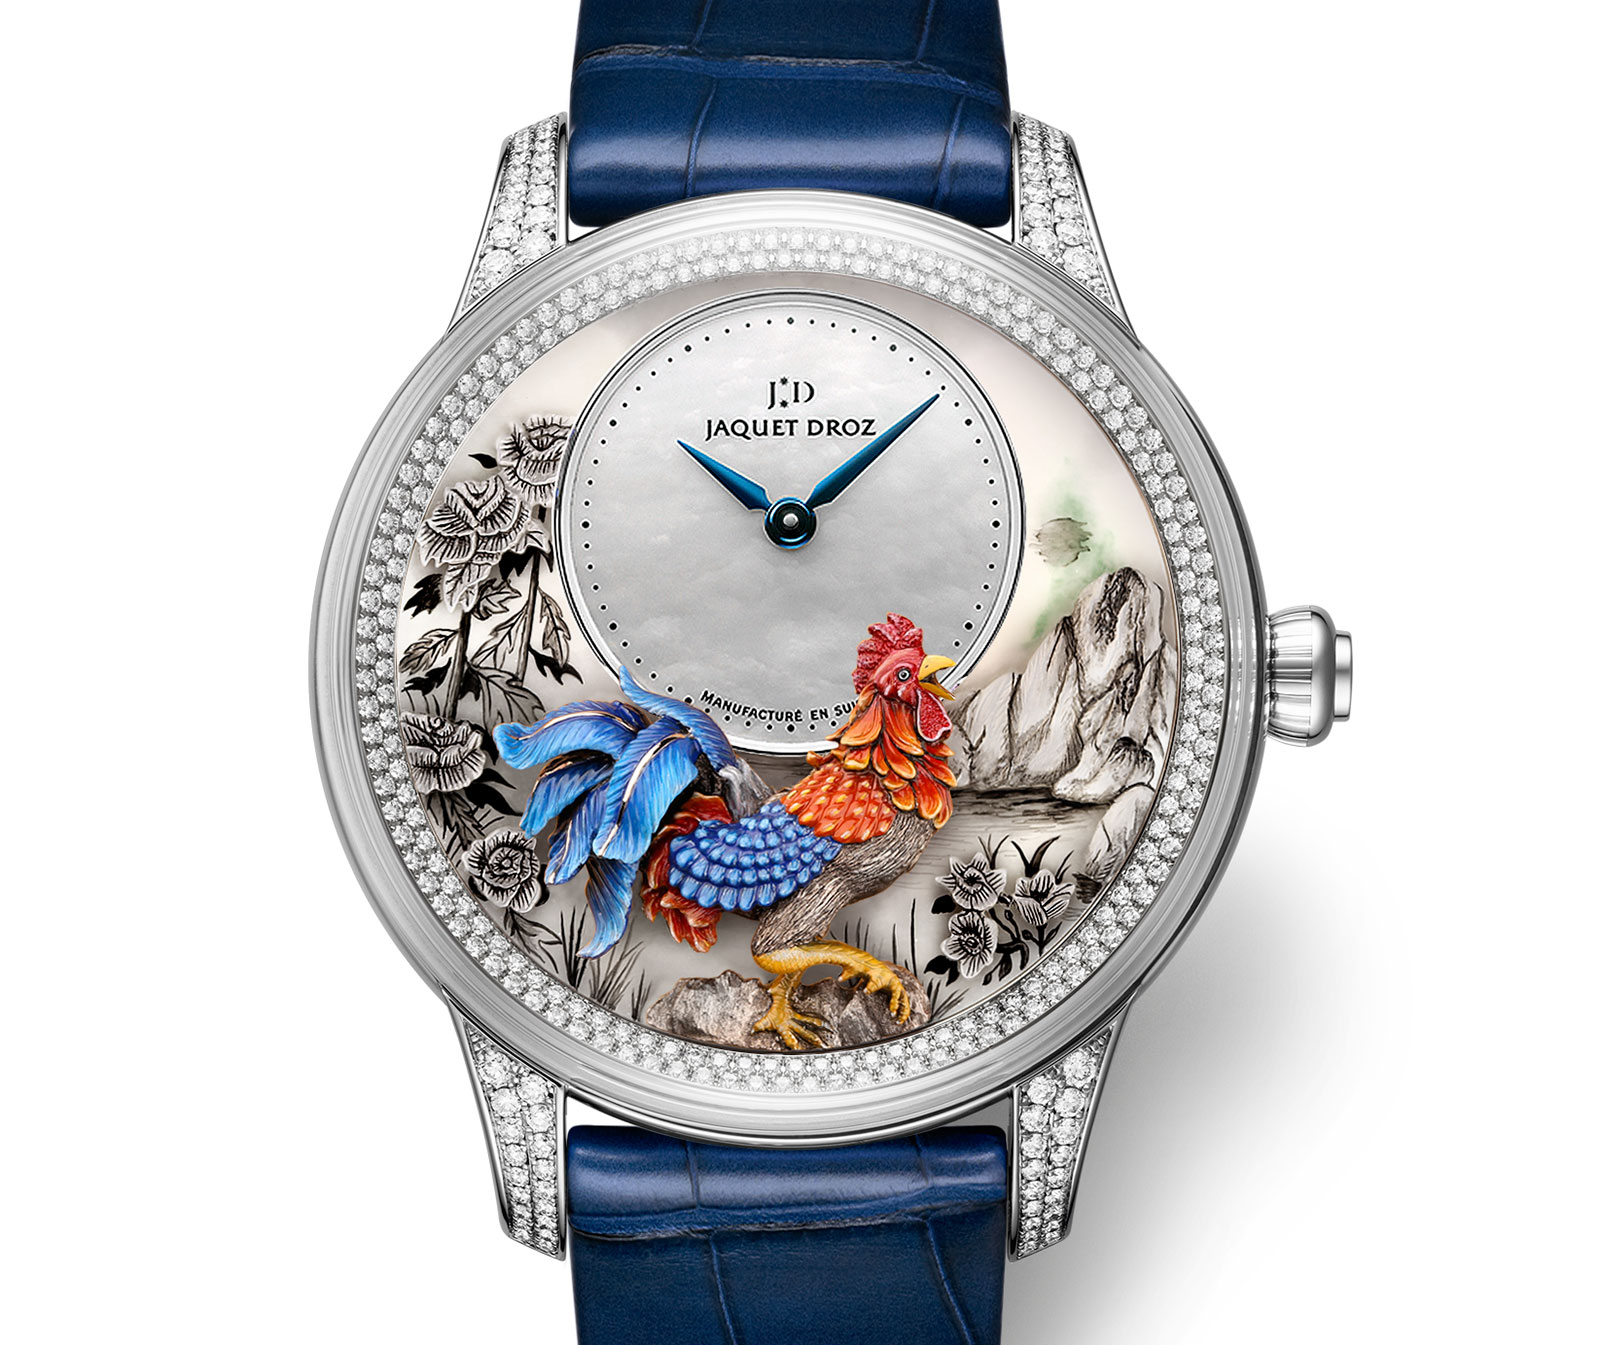 Jaquet Droz Petite Heure Minute Rooster 4